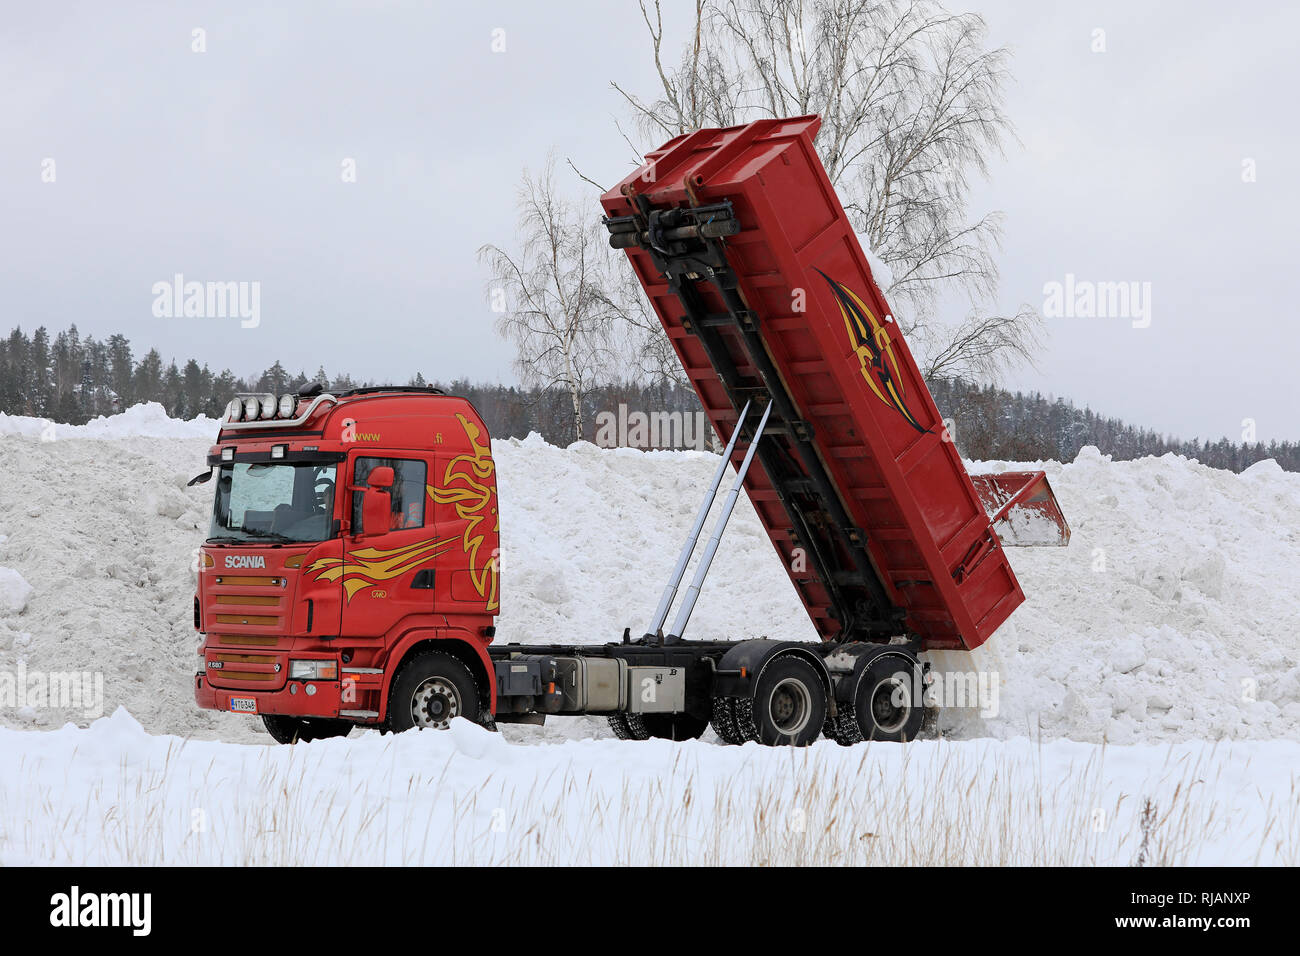 Salo, Finland - February 2, 2019: Red Scania R580 tipper truck unloads snow cleared from streets and parking lots at municipal snow dumping area. - Stock Image